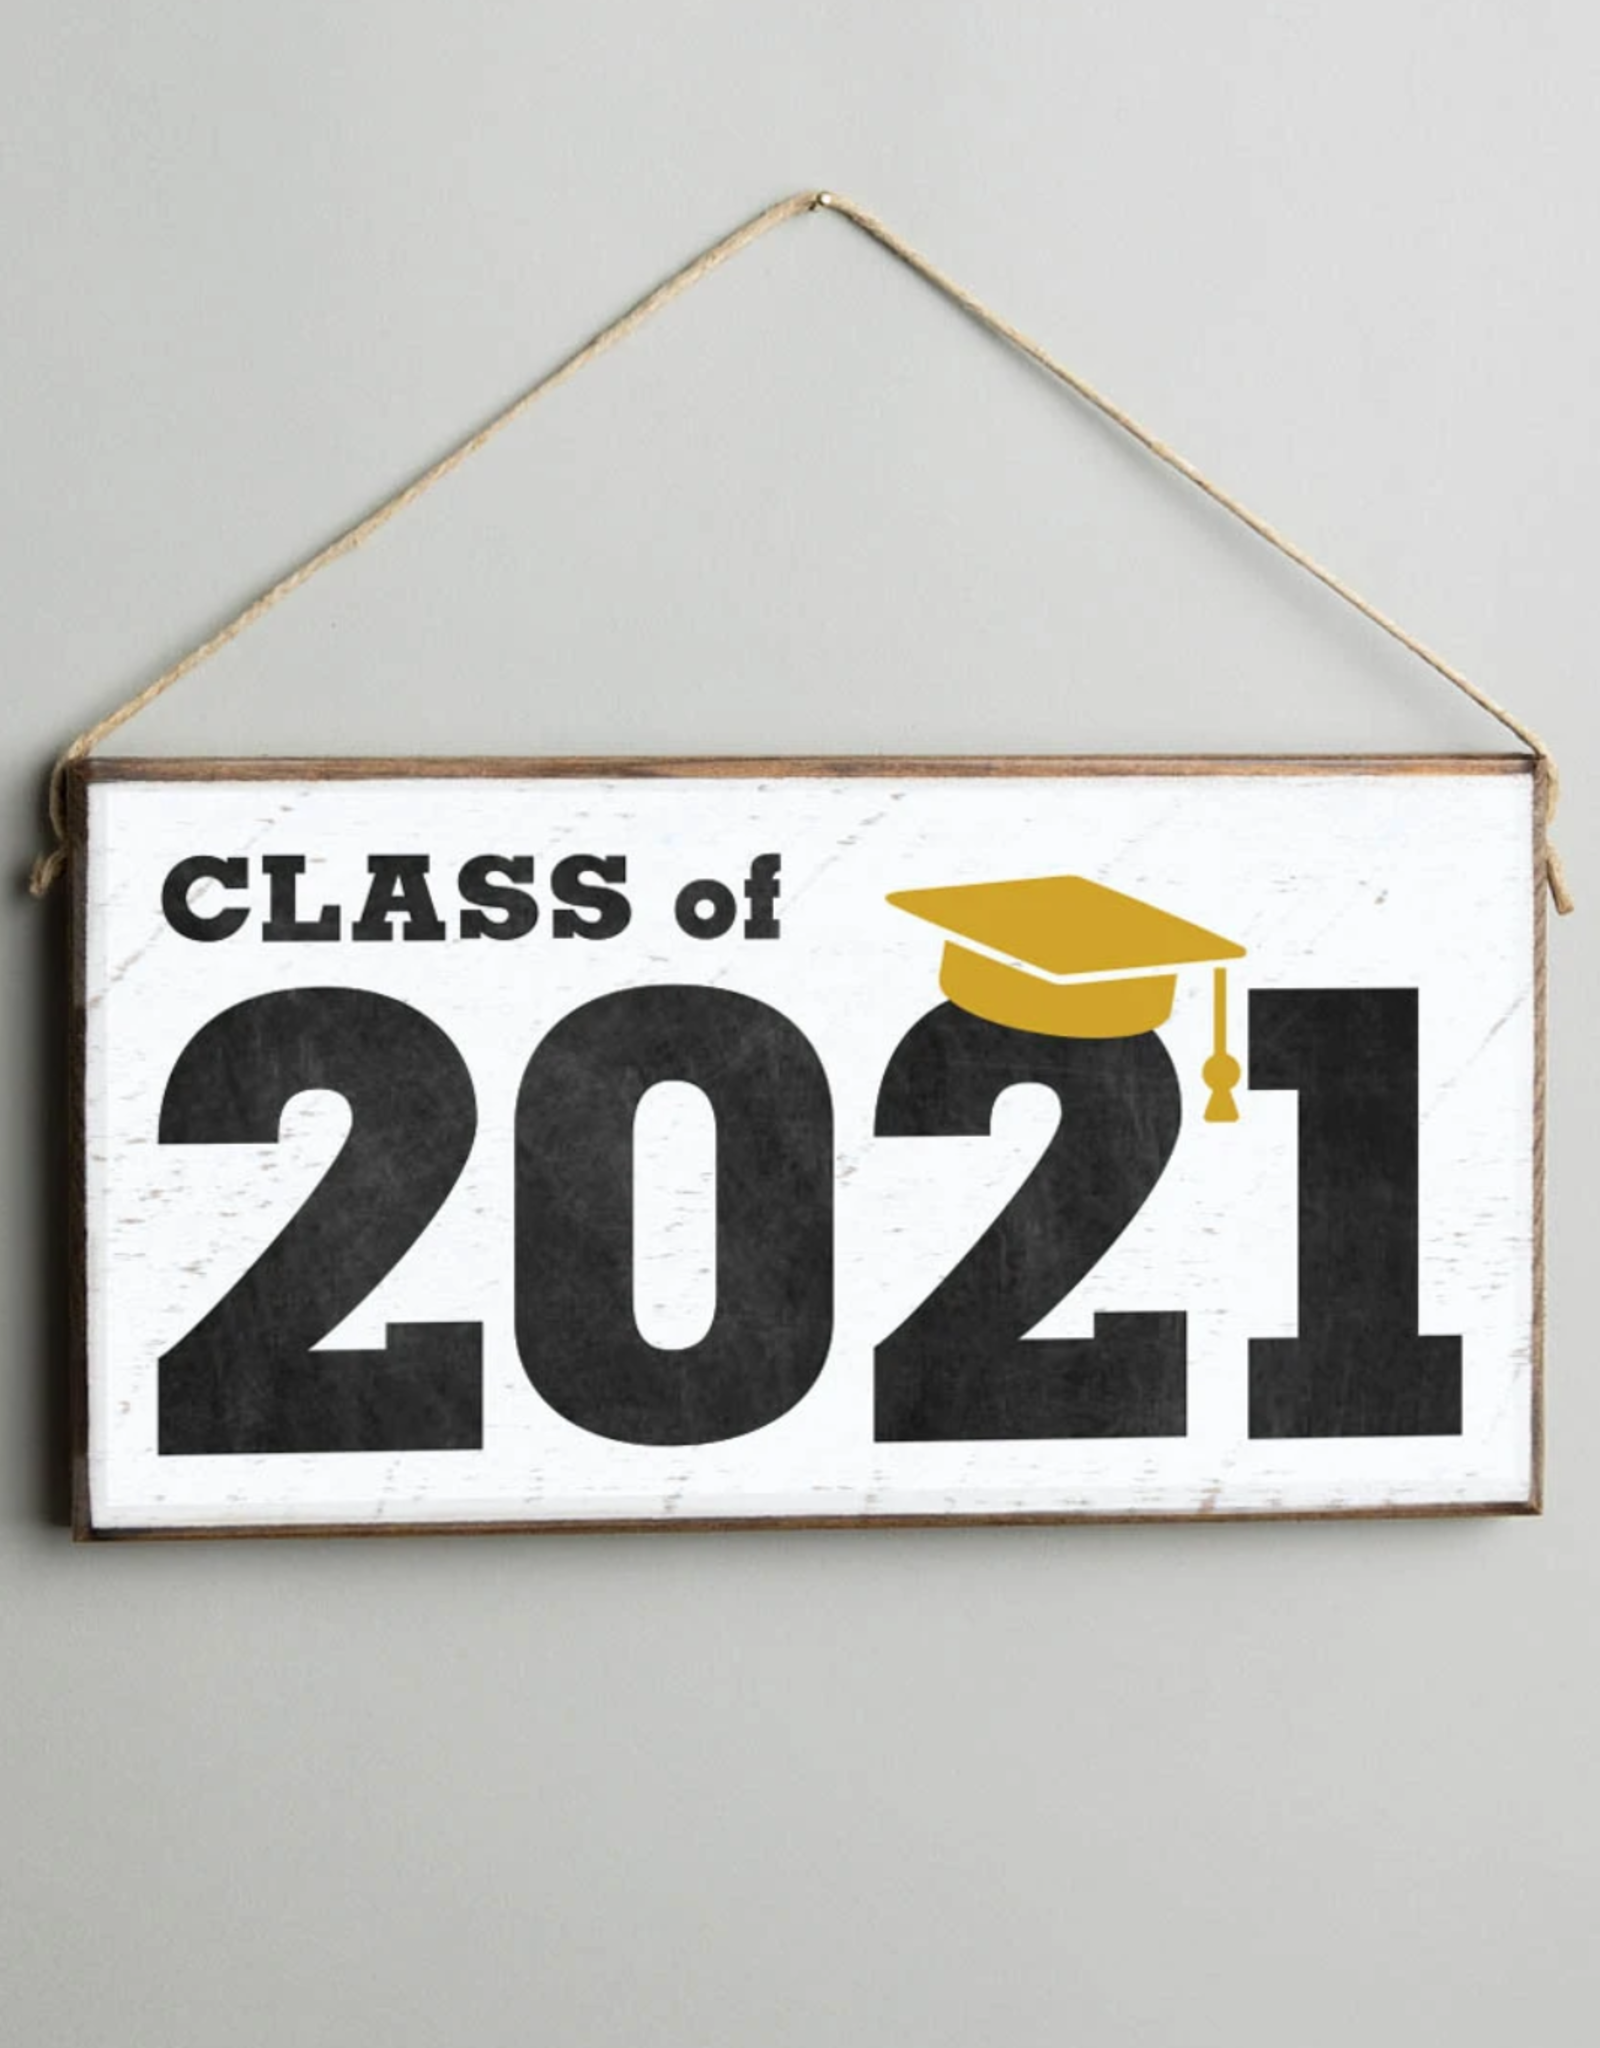 Rustic Marlin Rustic Marlin - Class of 2021 Mini Plank